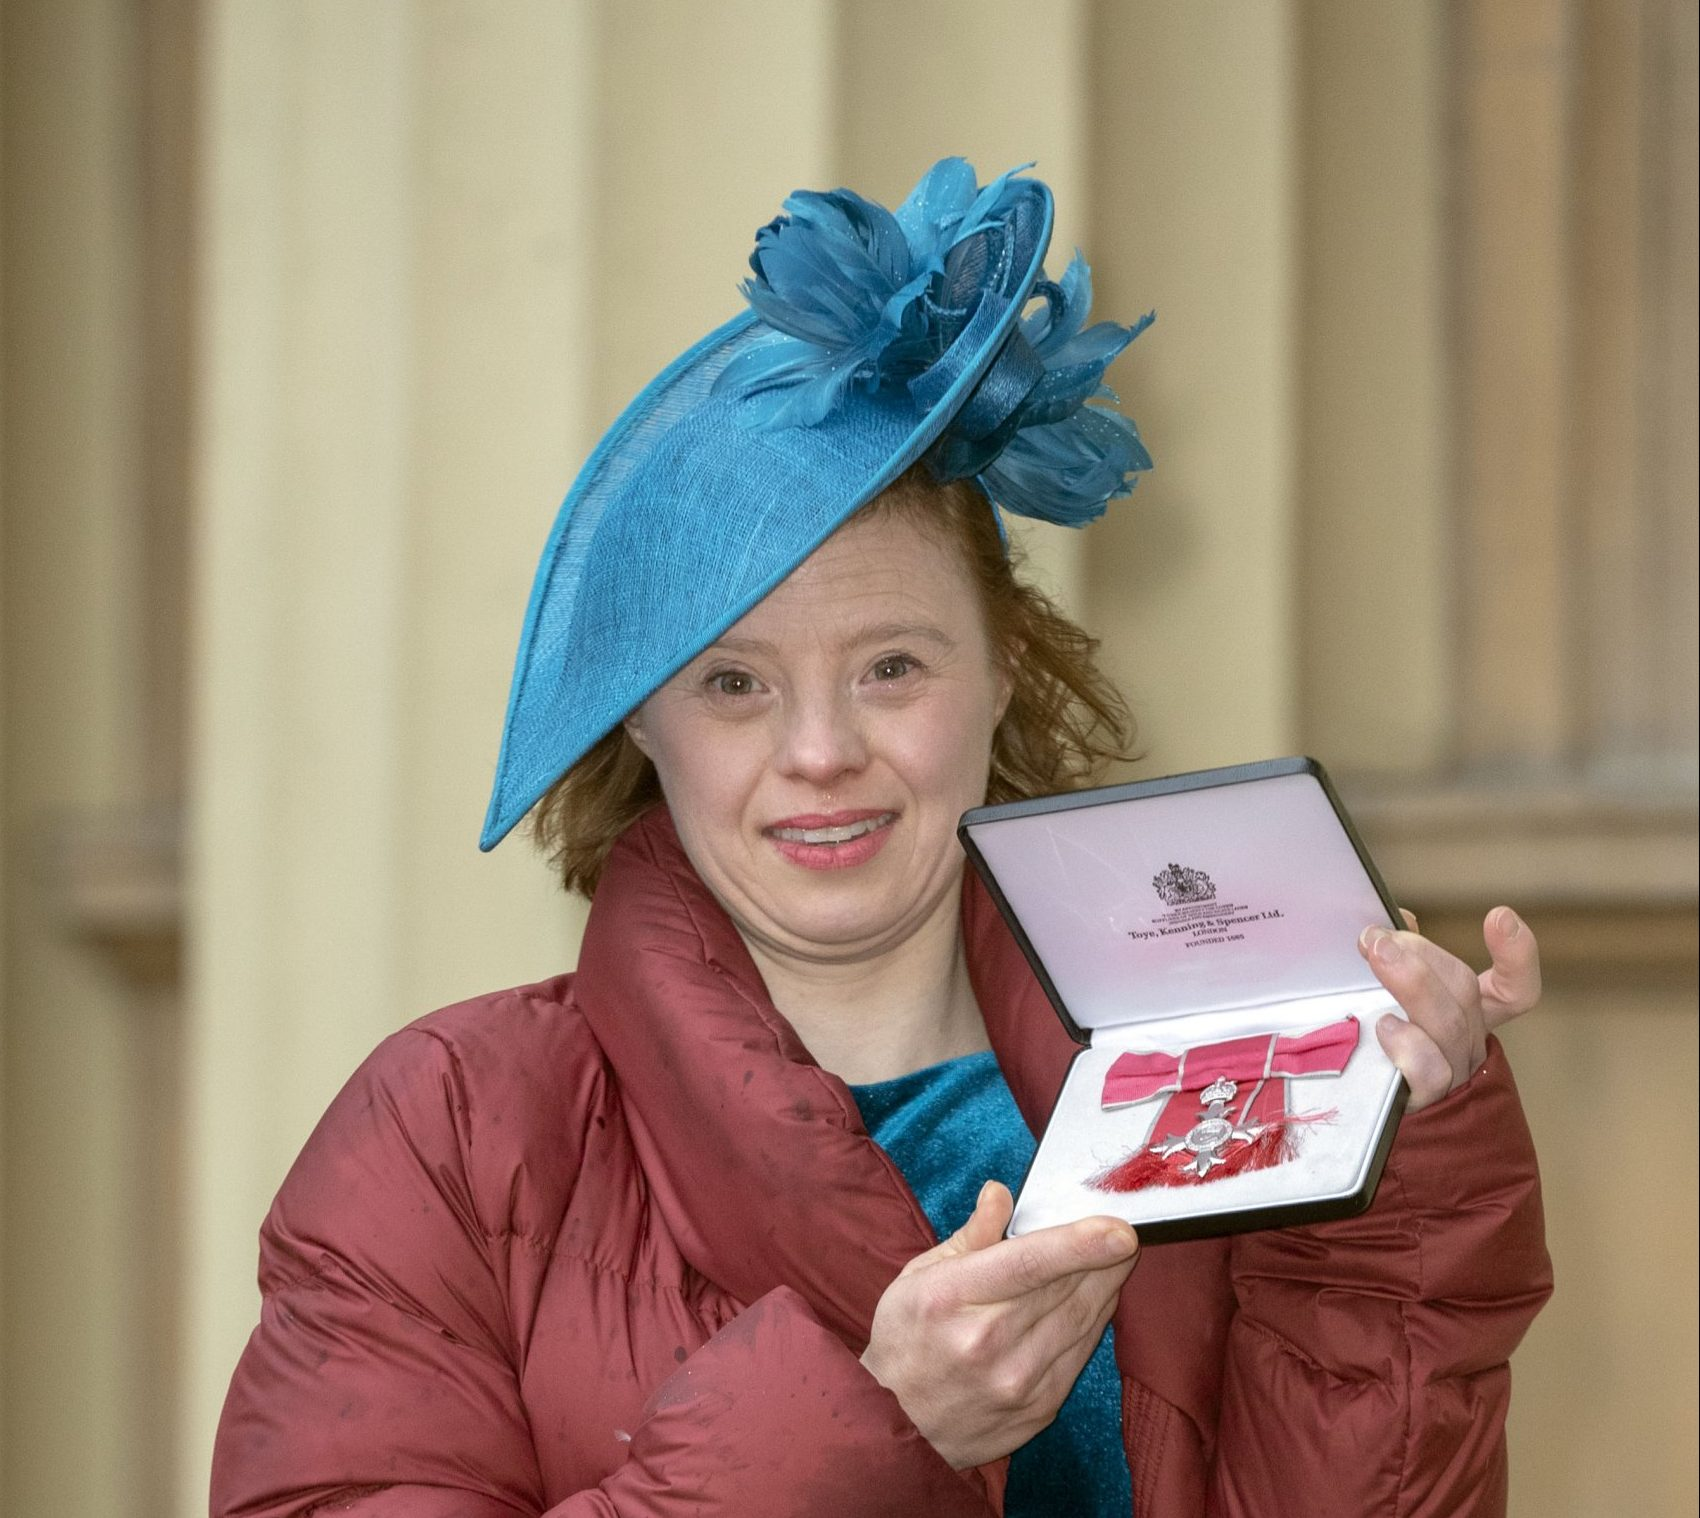 LONDON, ENGLAND - NOVEMBER 7: Sarah Gordy leaves Buckingham Palace after receiving her MBE (Member of the Order of the British Empire) at an Investiture ceremony on November 7, 2018 in London, England. The Call The Midwife actress has become the first woman with Down's syndrome to receive an MBE. (Photo by Steve Parsons - WPA Pool/Getty Images)